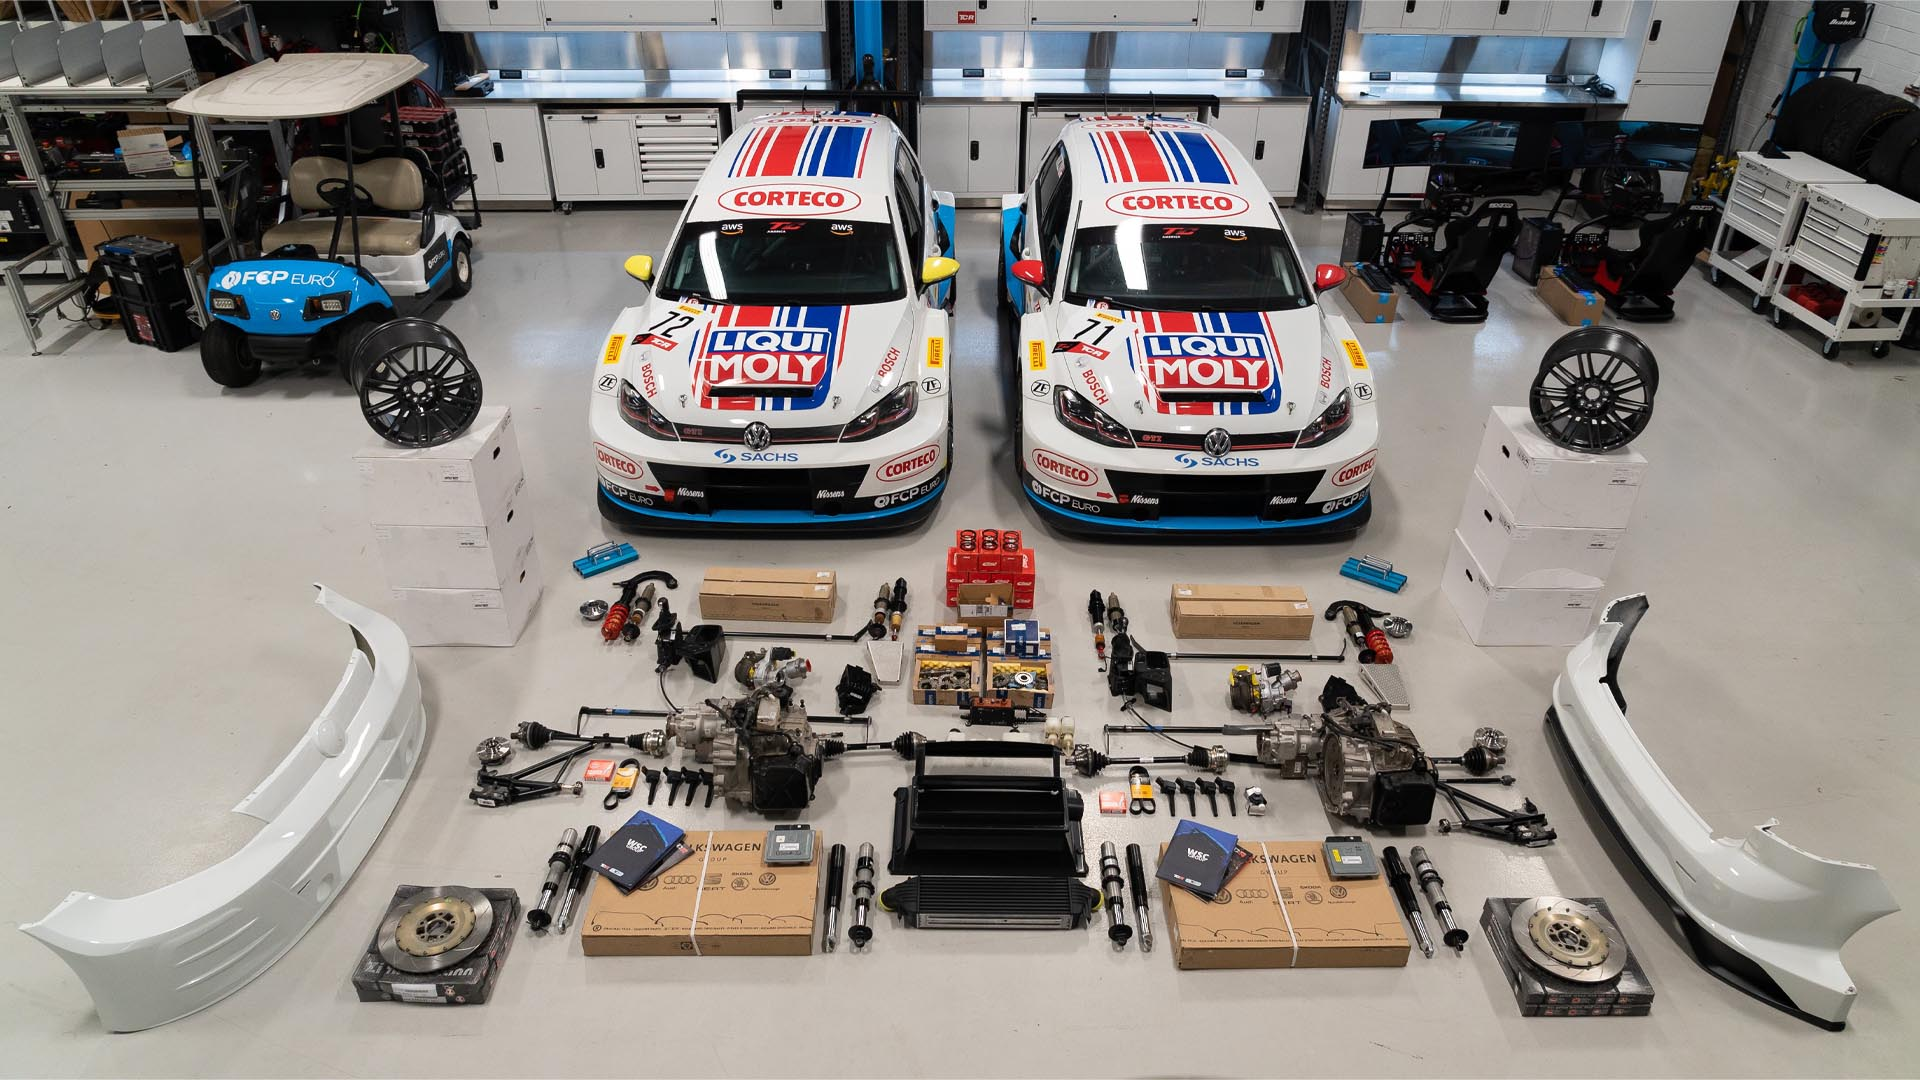 For Sale: Two Championship-Winning VW GTI TCRs (12/8/2020 Update)